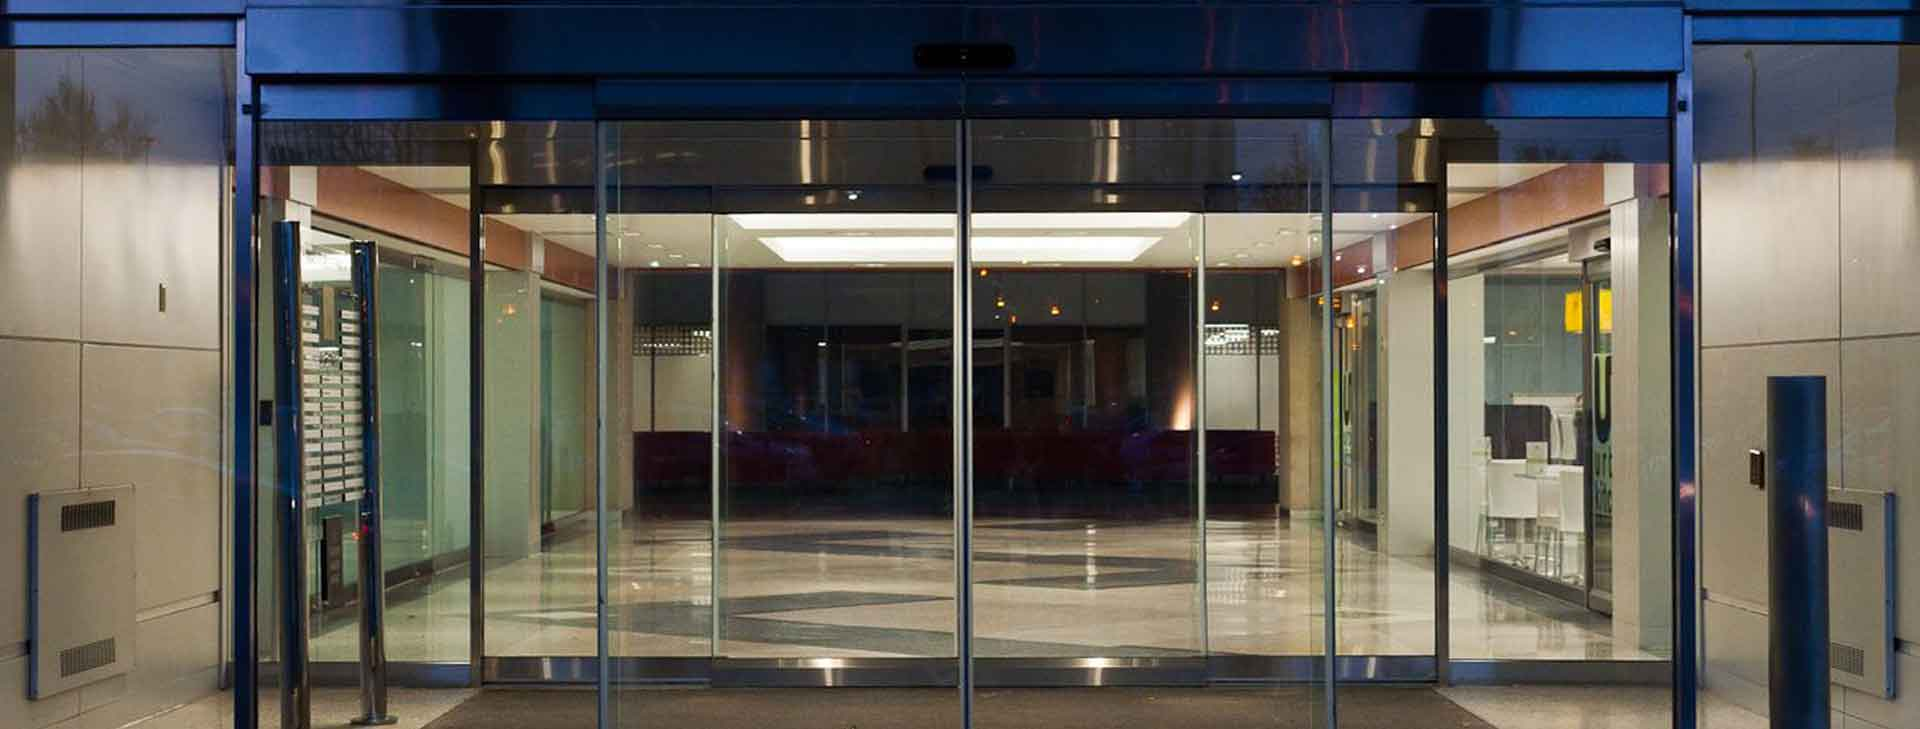 5 advantages of automatic glass doors in commercial spaces for Sliding main door